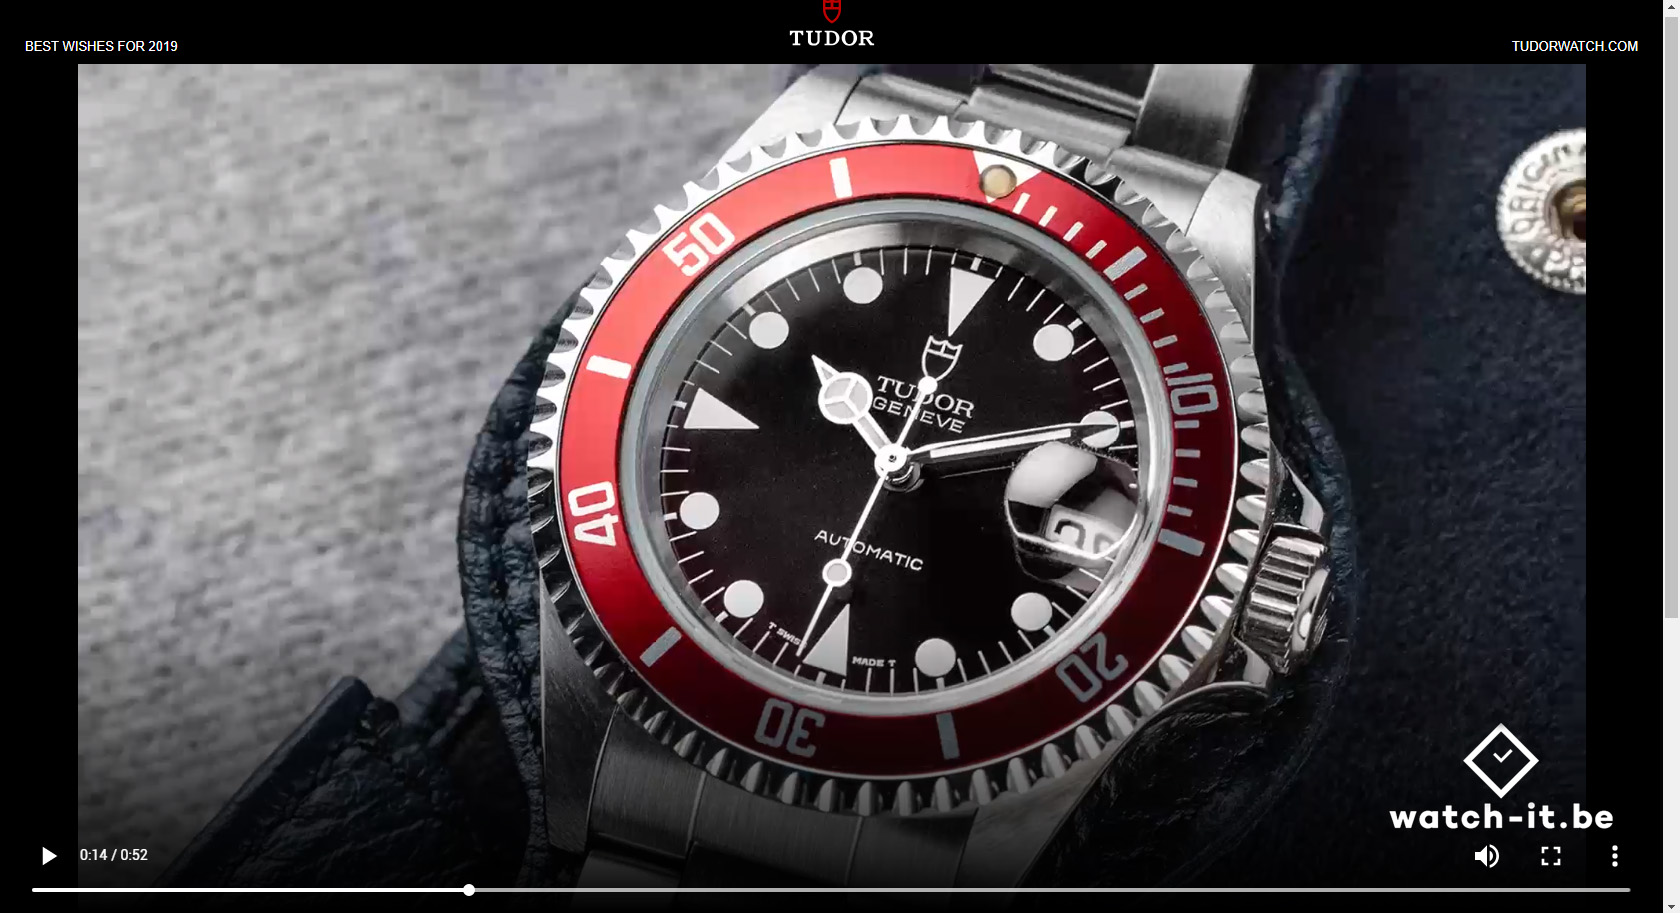 Tudor Submariner Red